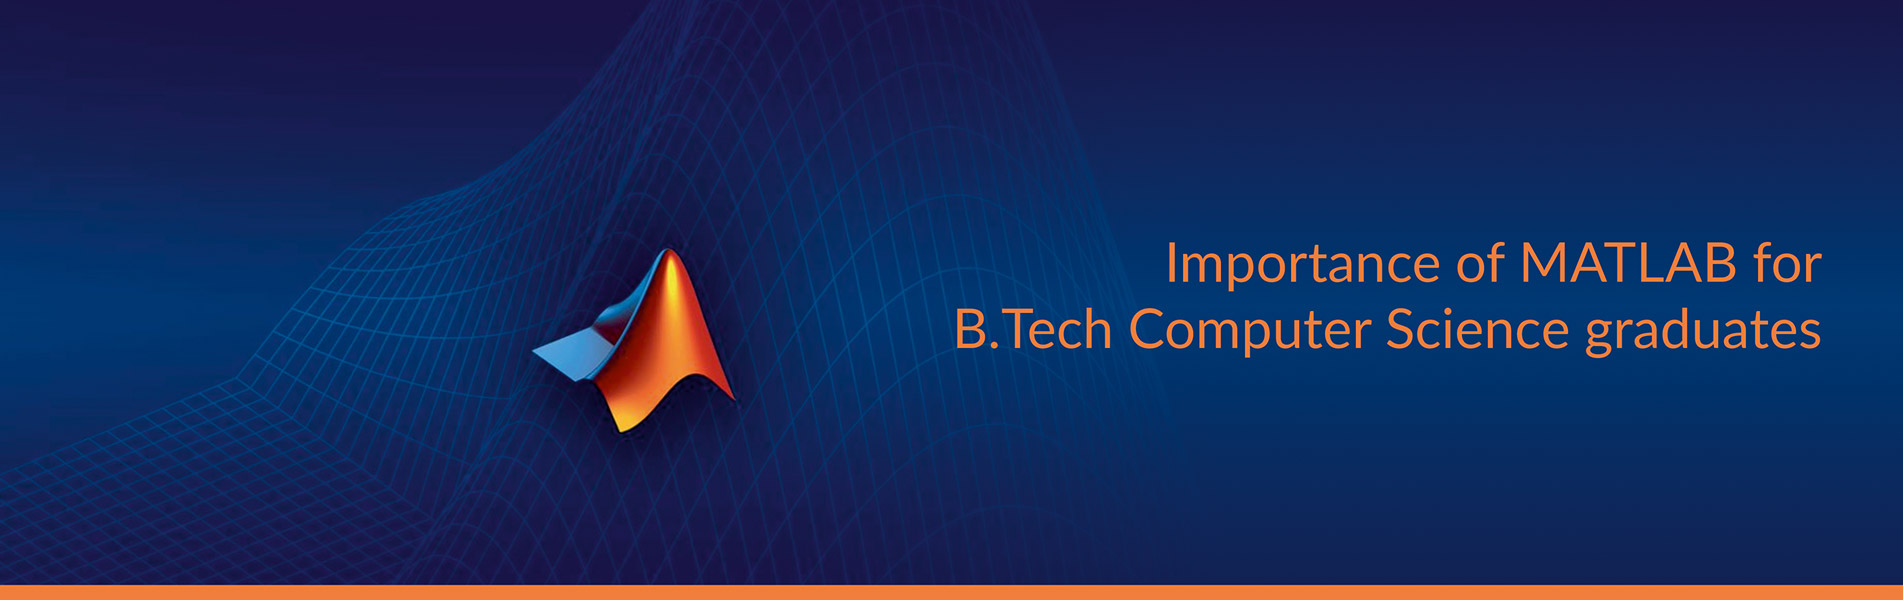 MATLAB, BTech Computer Science